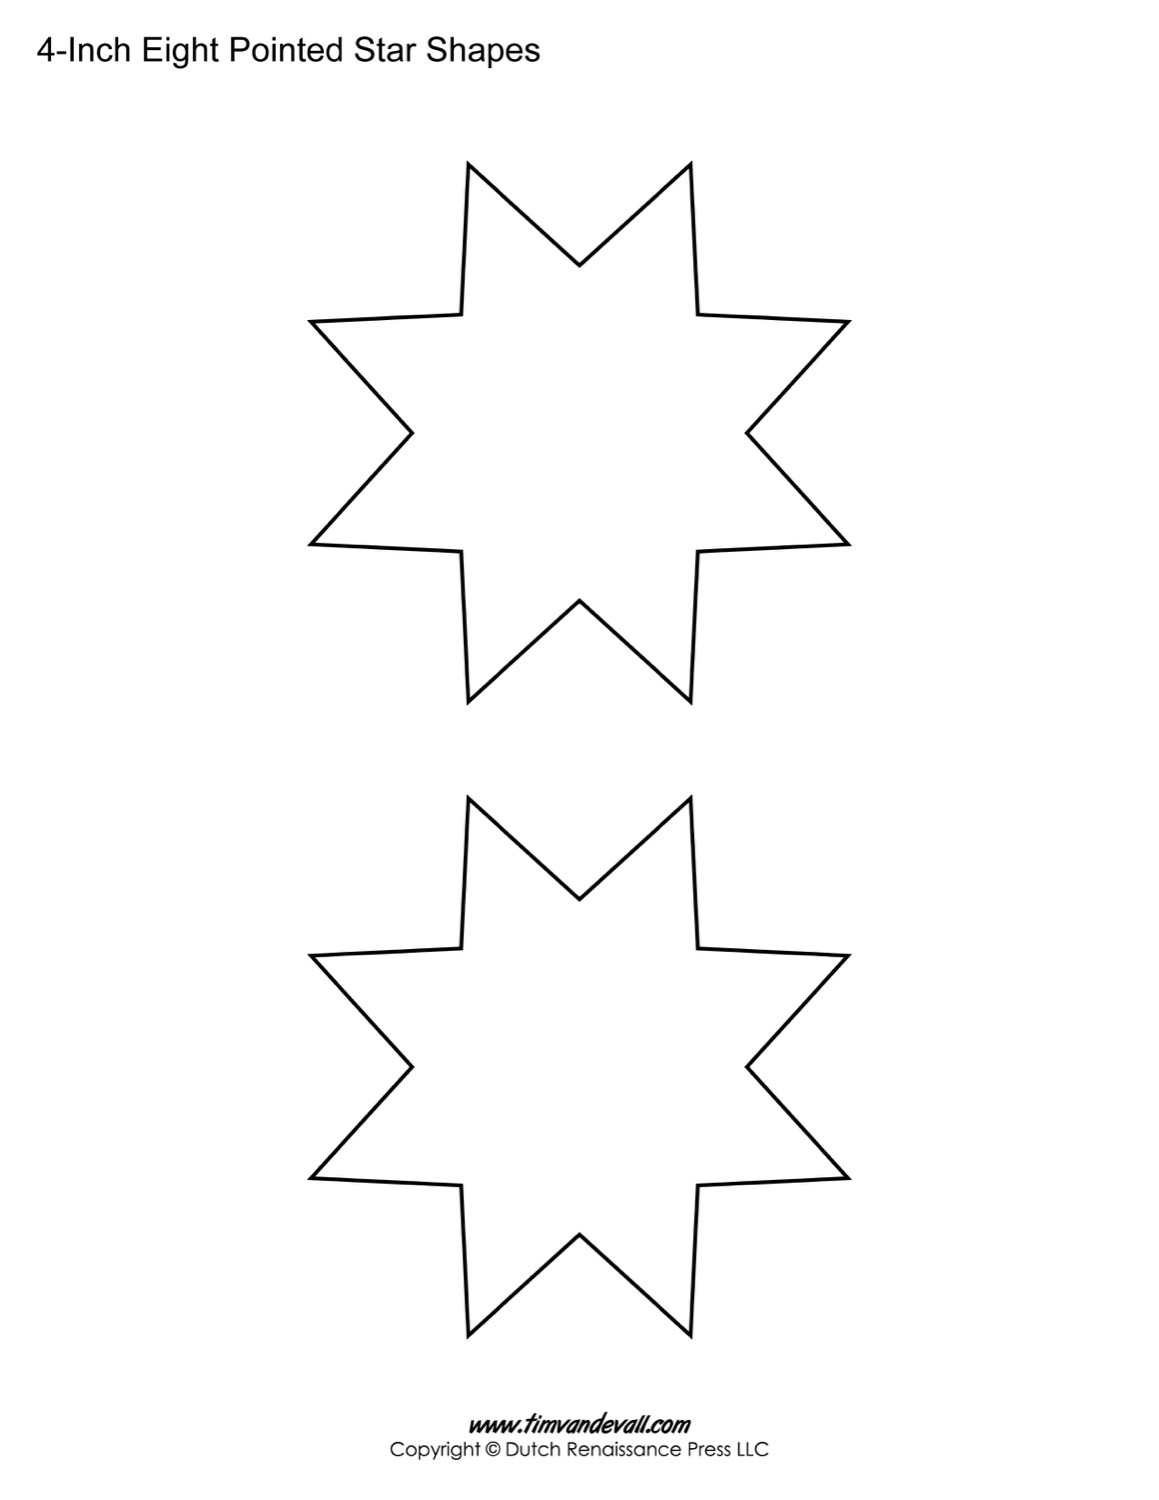 Free Eight Pointed Star Shapes | Blank Printable Shapes For Kids - Star Template Free Printable